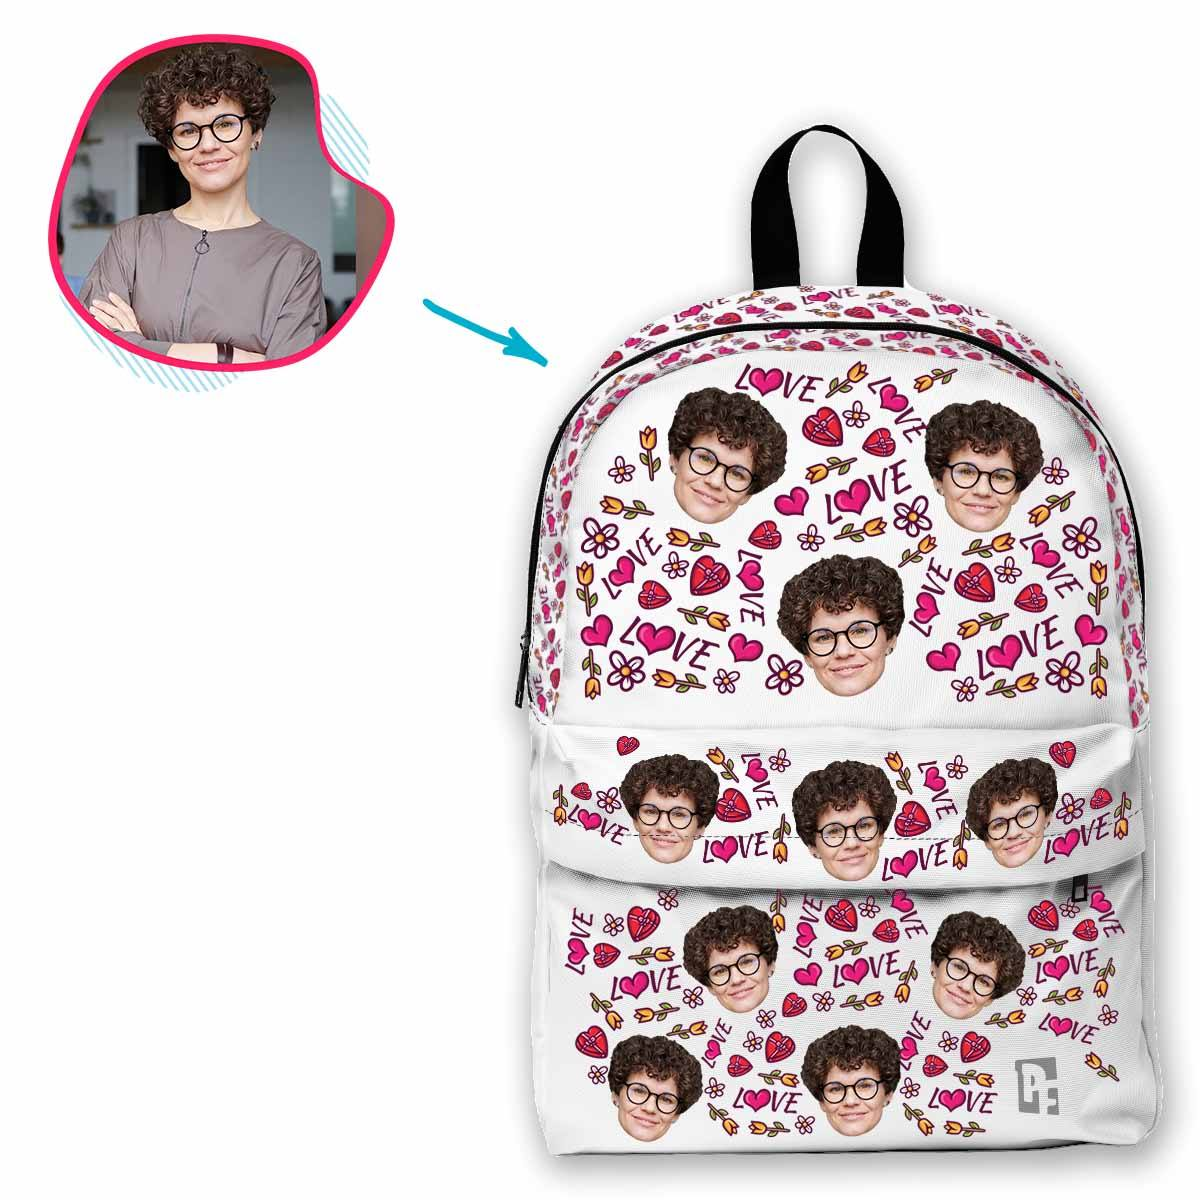 white Hearts and Flowers classic backpack personalized with photo of face printed on it